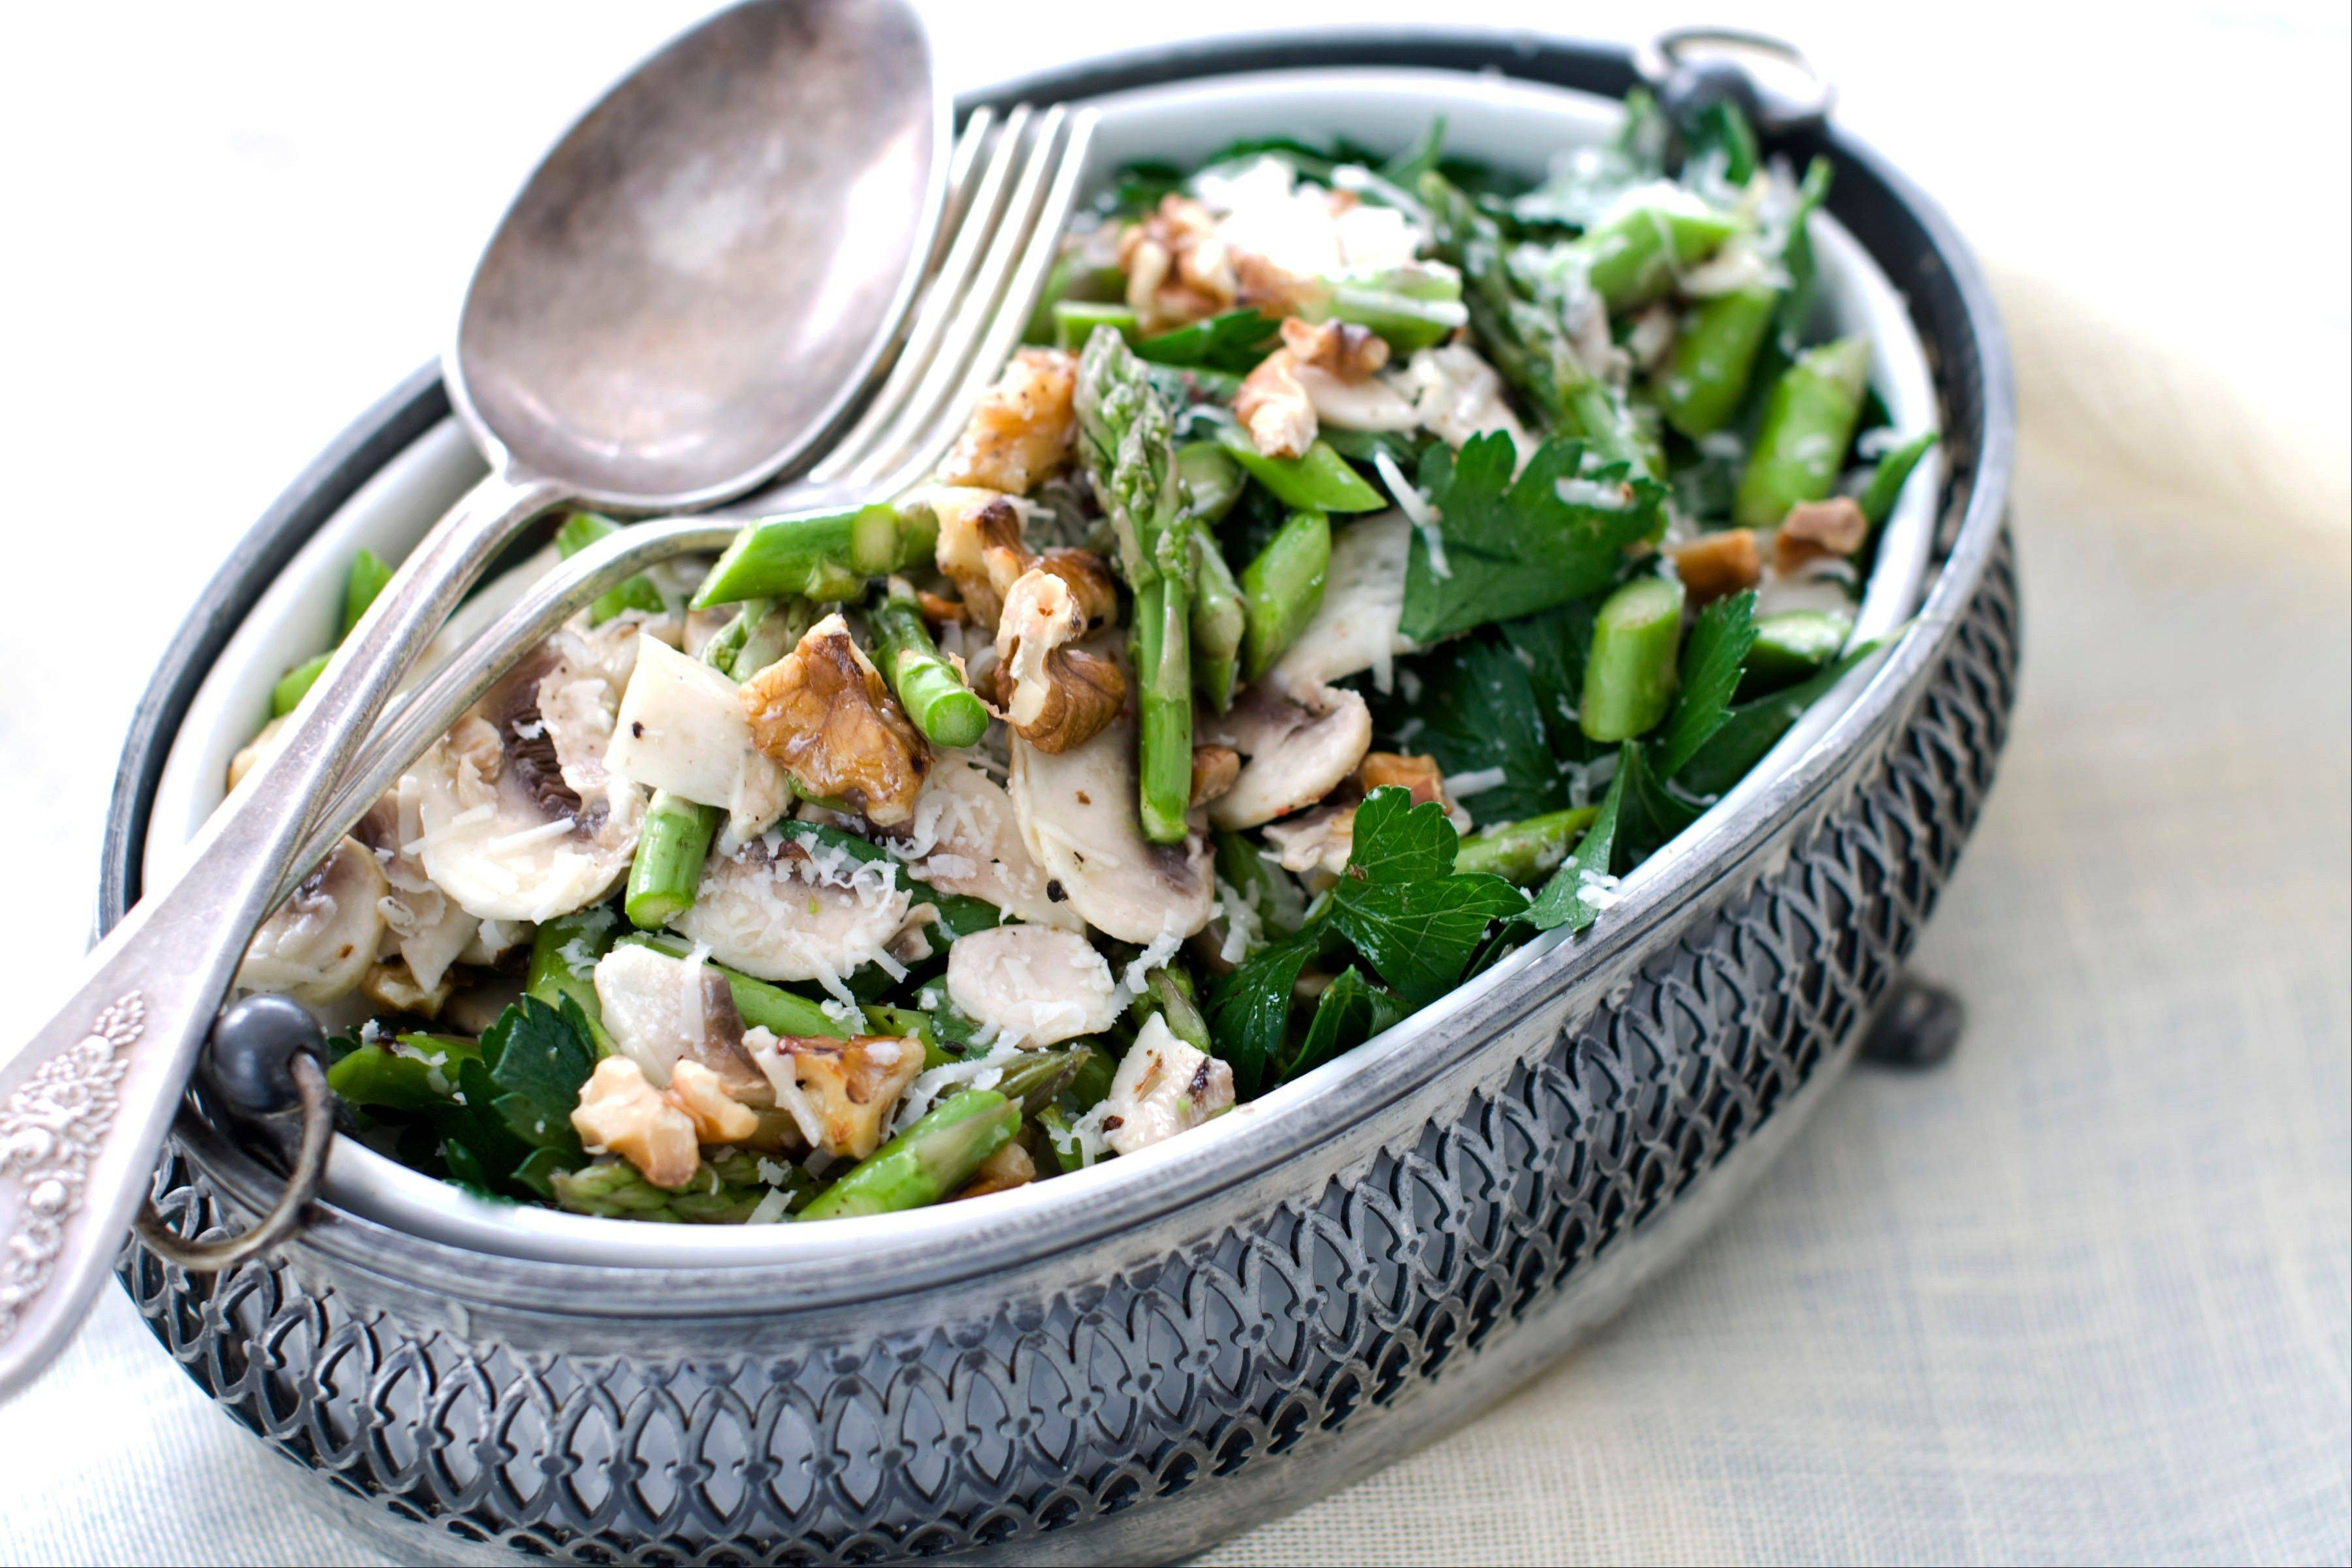 Raw Asparagus, Mushroom and Parsley Salad with Nuts and Parmesan